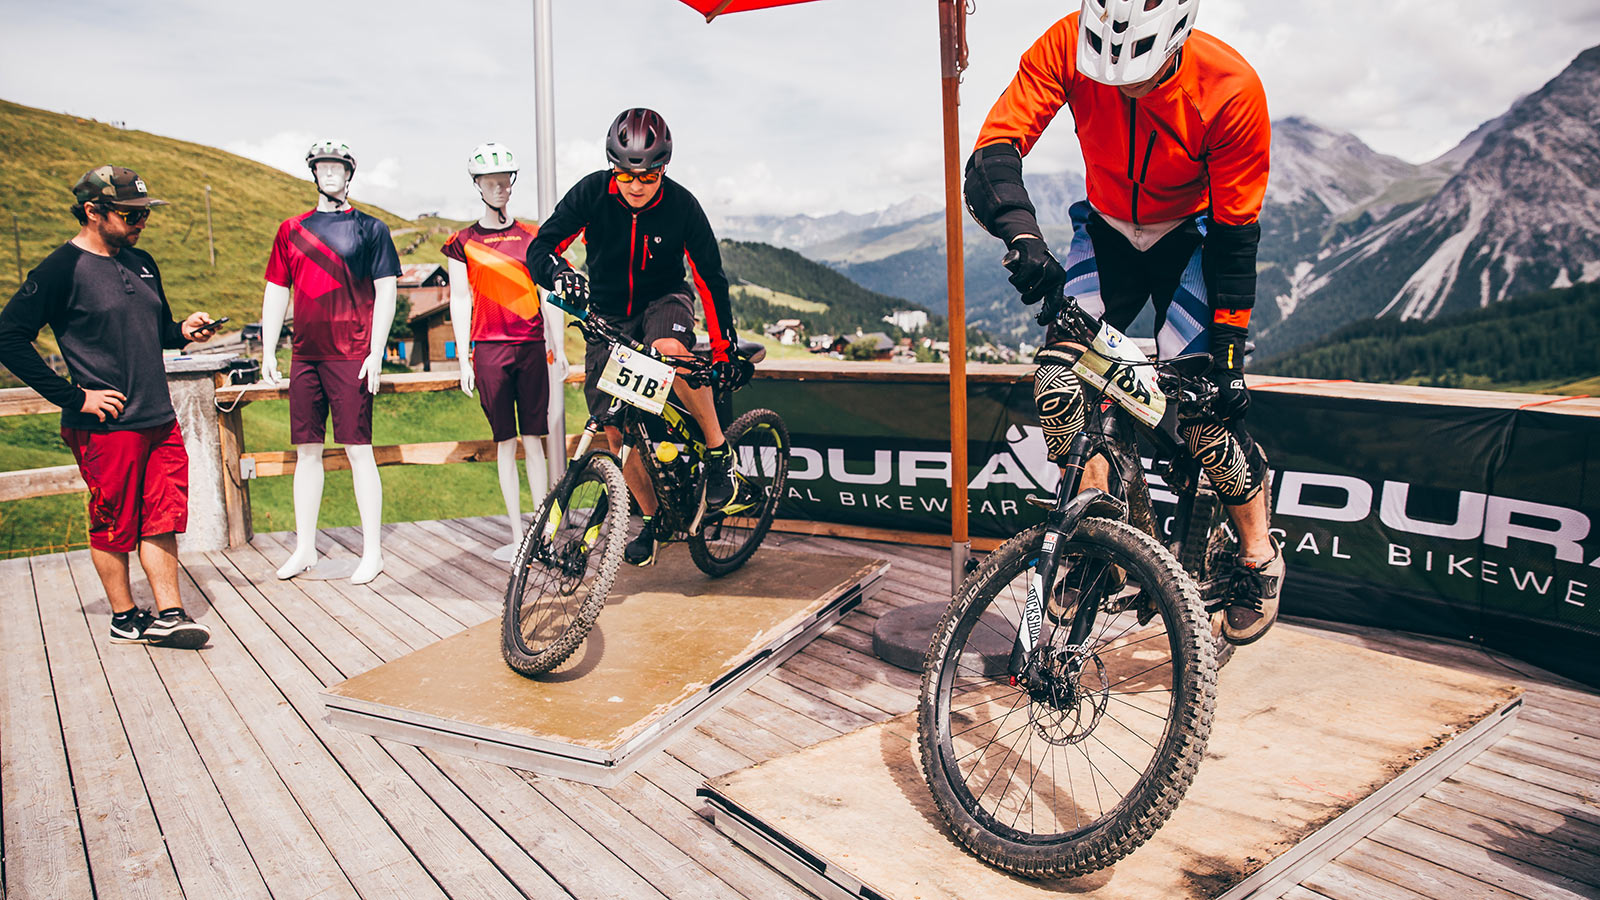 Event Hörnlijagd 2018 Arosa - Endura Station